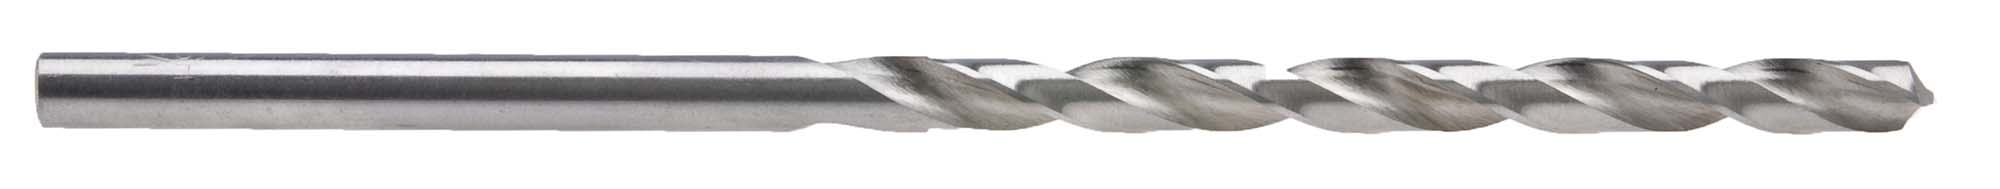 "37/64""  ""Taper Length"" Long Straight Shank Drill Bit, 8 3/4"" Overall Length, High Speed Steel"